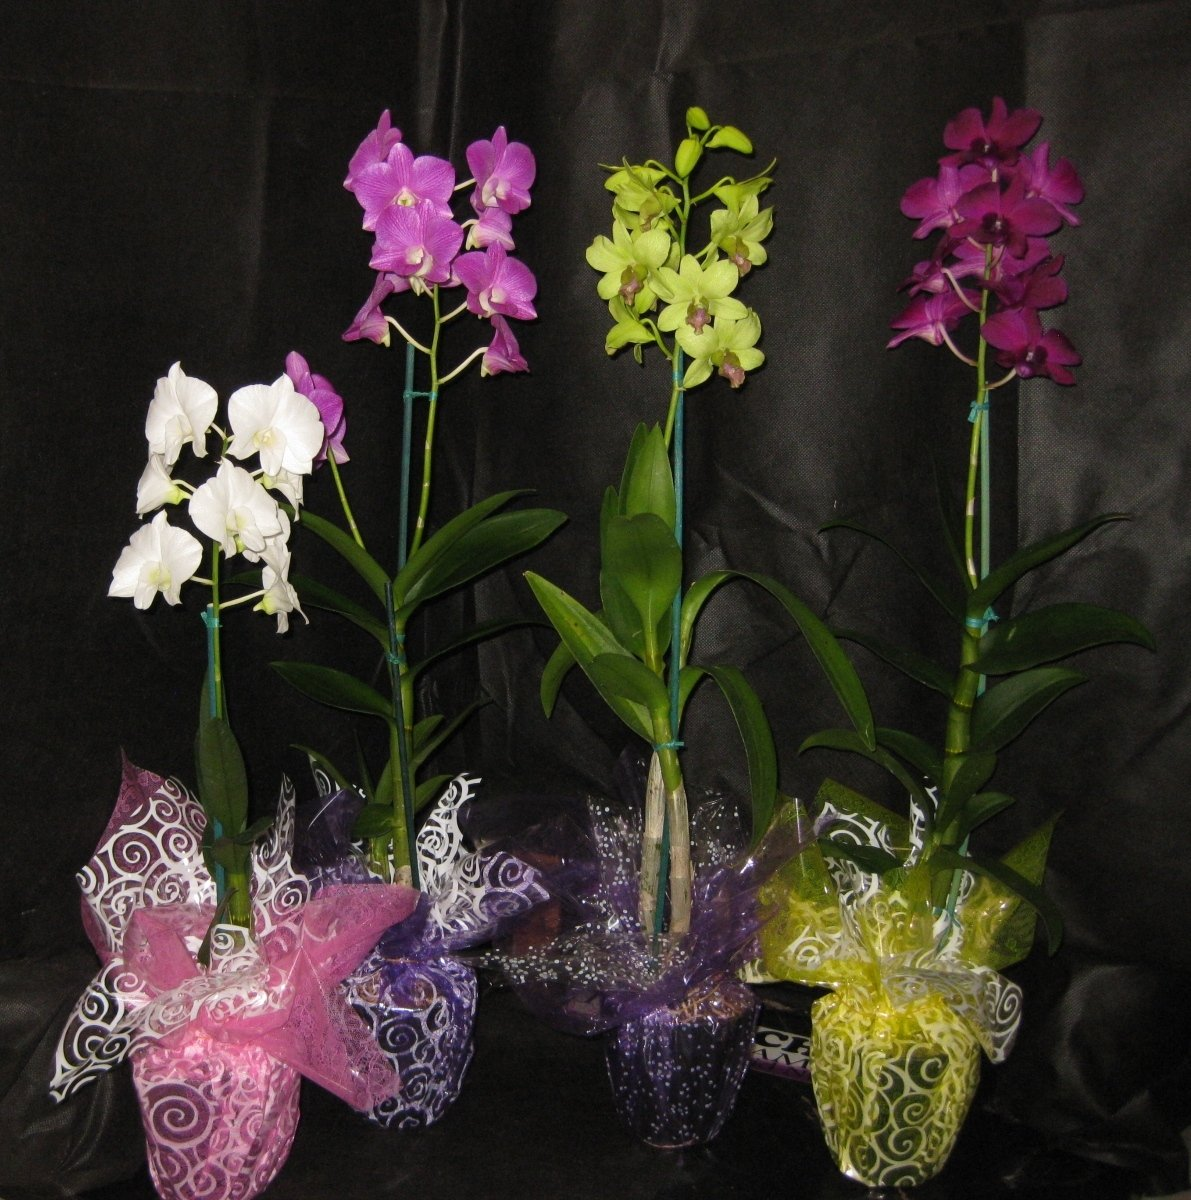 4 Blooming/Budded FLOWERING Dendrobium Orchid Plant-A GIFT OF ALOHA! BEAUTIFUL & NICE- Gift for any Occasion- by Kawamoto Orchid Nursery